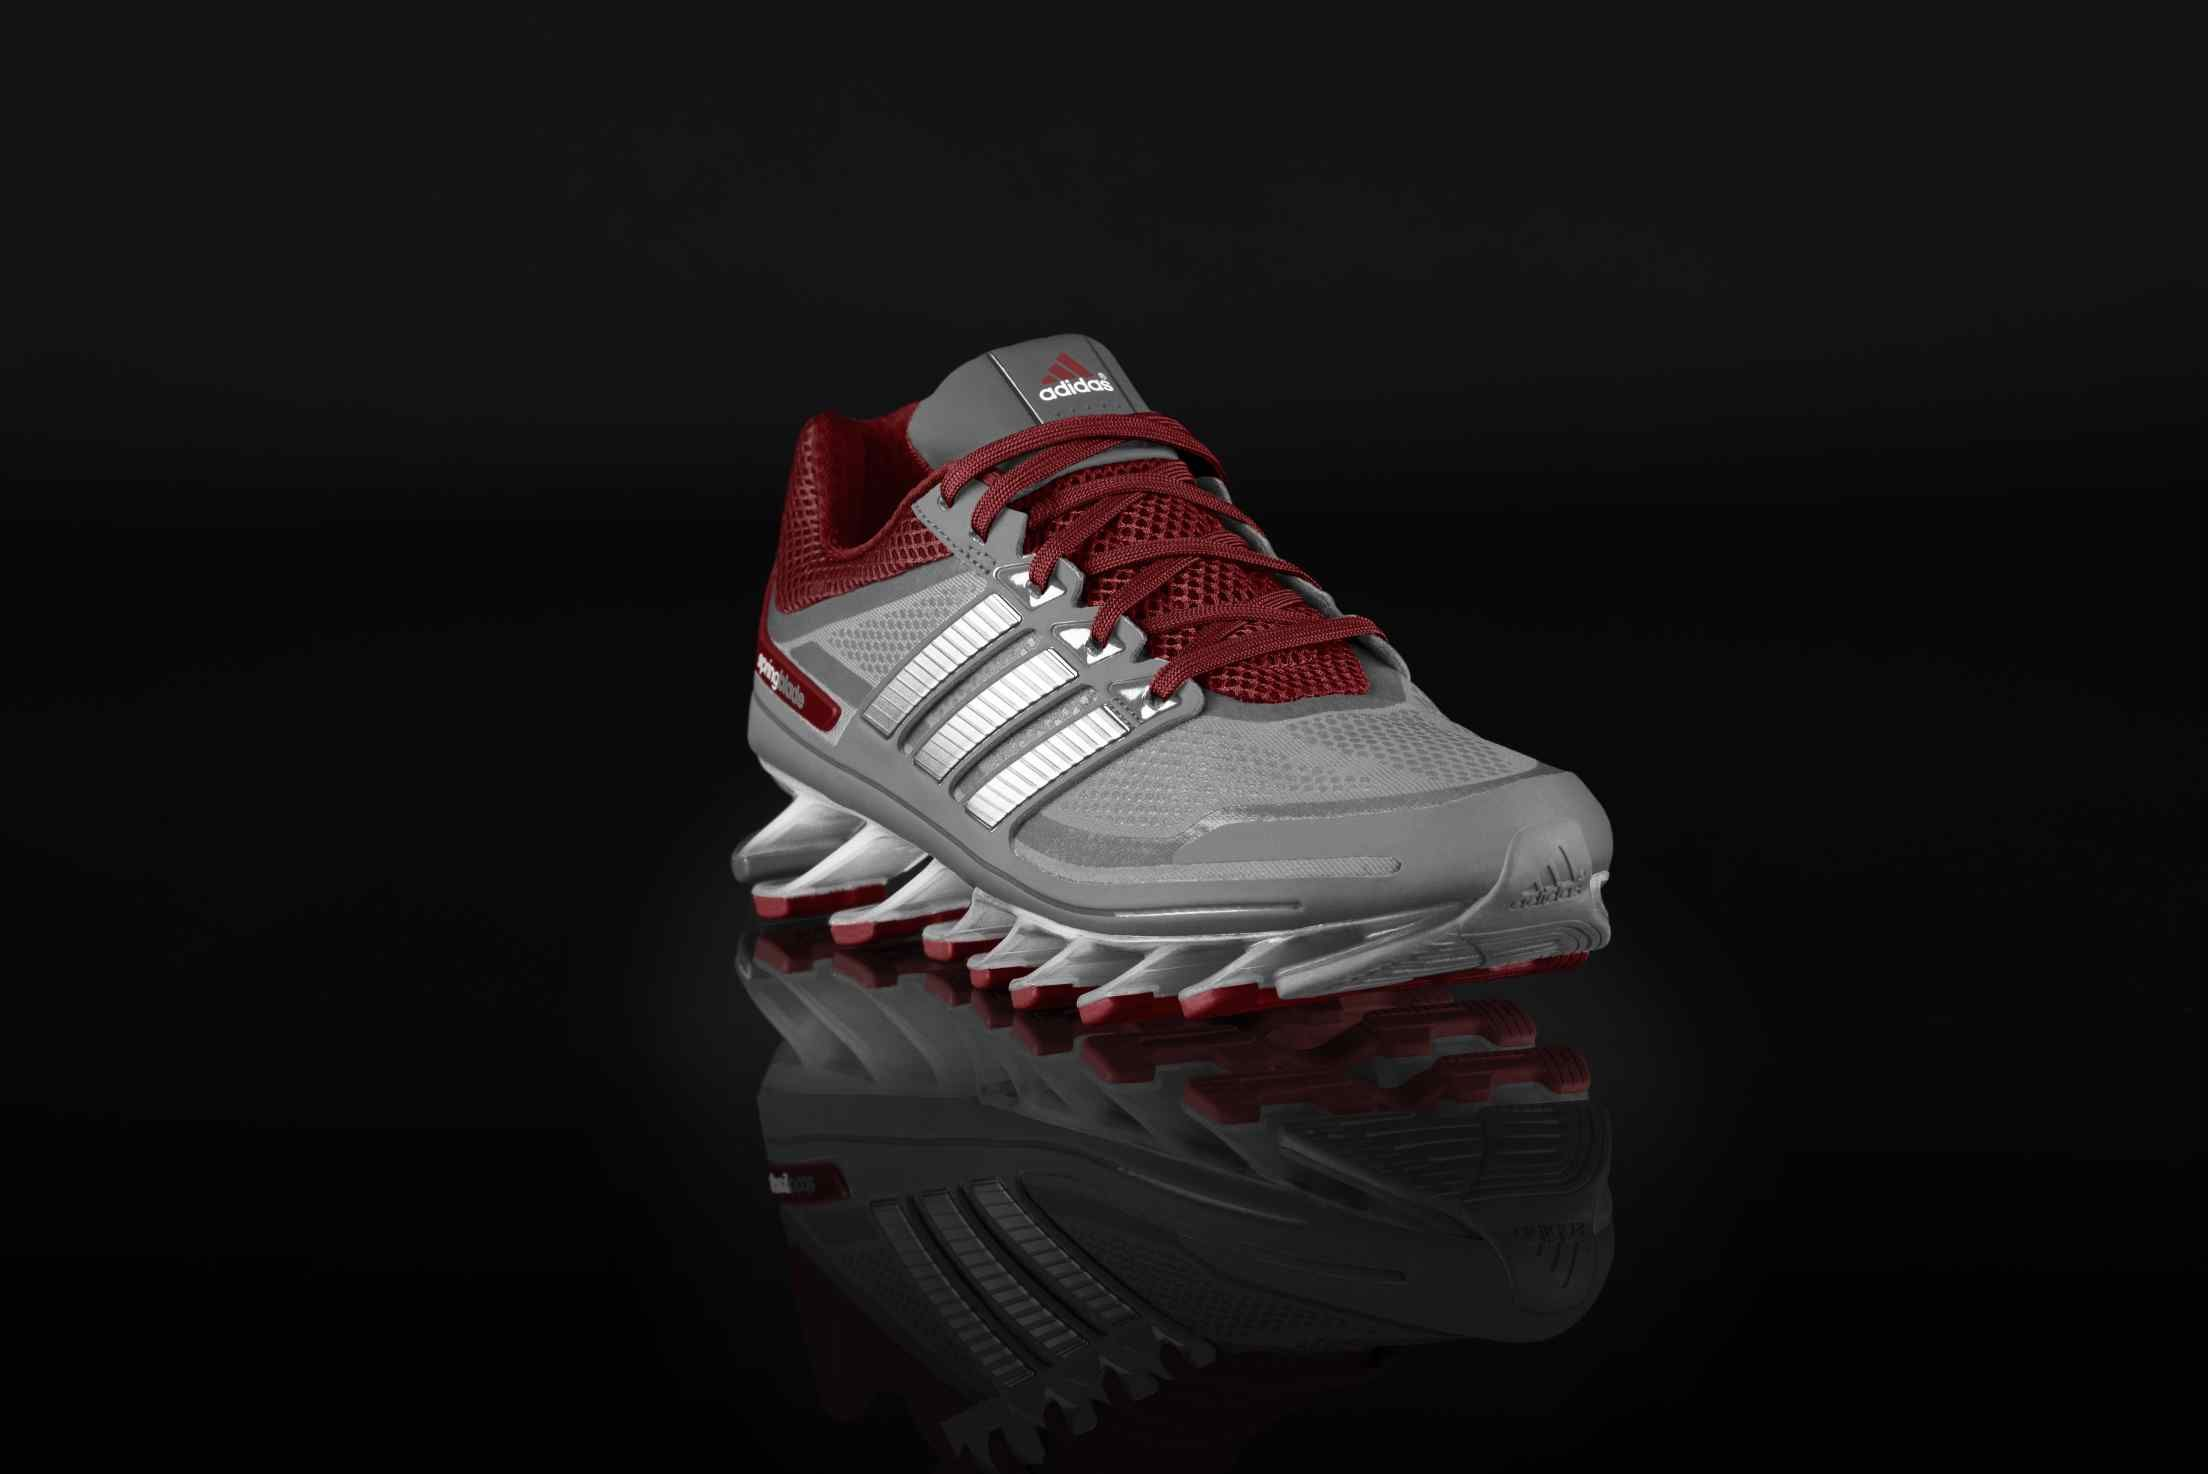 the latest d10b6 3eff6 Adidas Spring Blade. Adidas Spring Blade Nike Air Max, Running Shoes,  Trainers, Blade, Men s Style